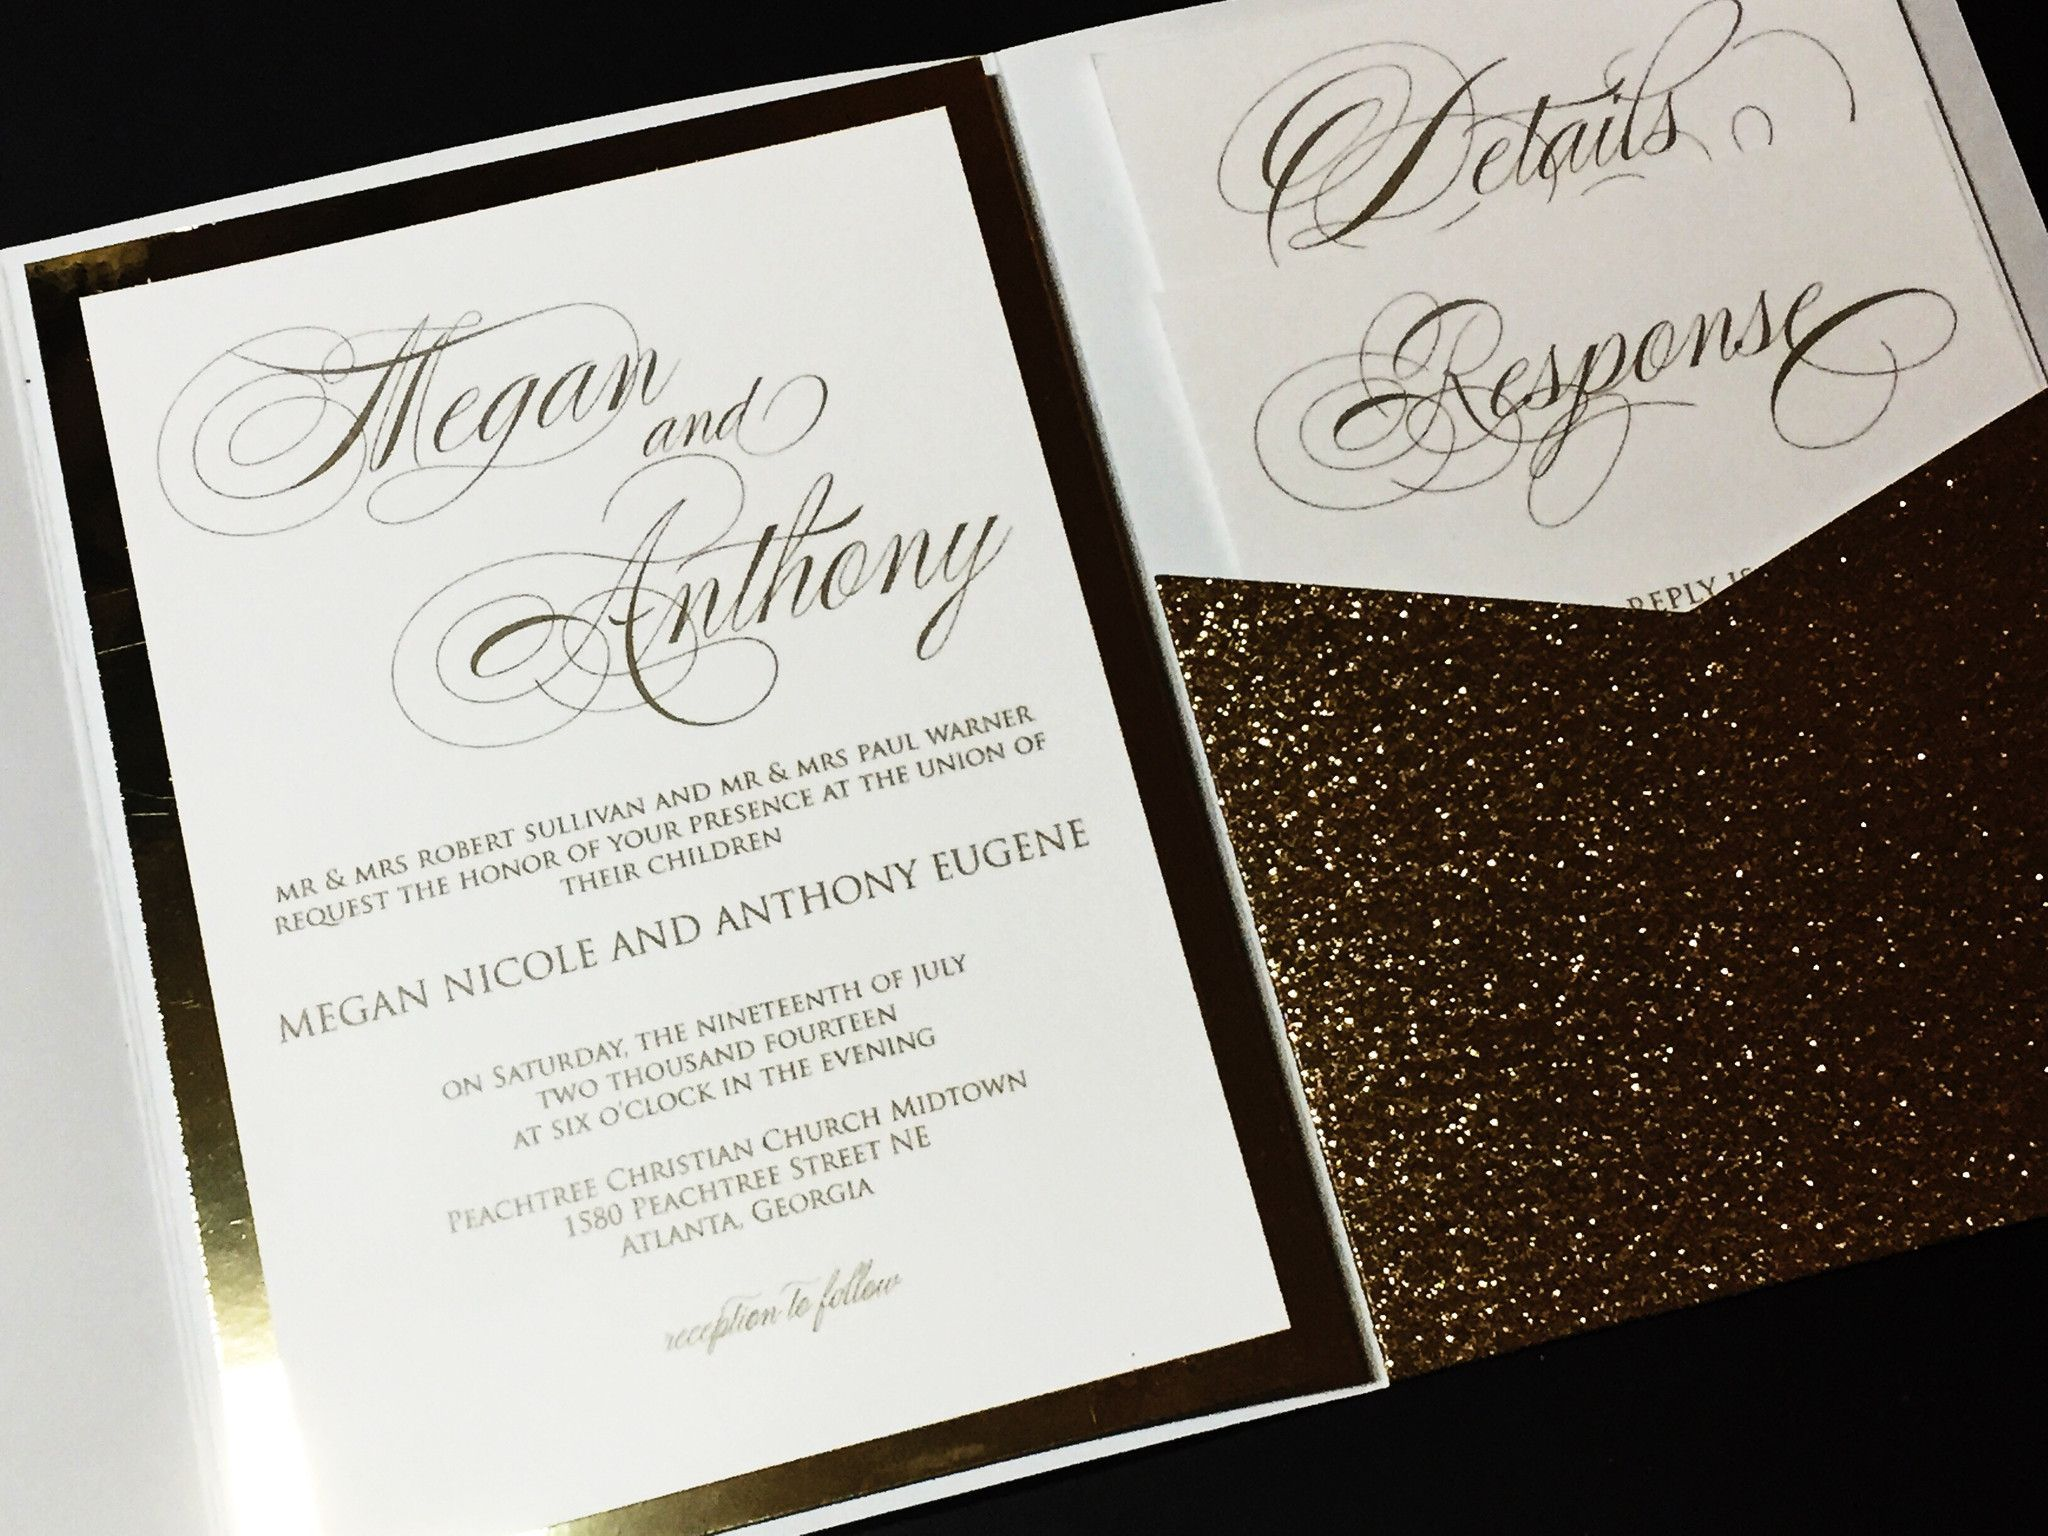 Gold glitter wedding invitation pocketfold wedding invitation gold glitter wedding invitation pocketfold wedding invitation calligraphy wedding invitation megan version glitter pocketfold version stopboris Gallery